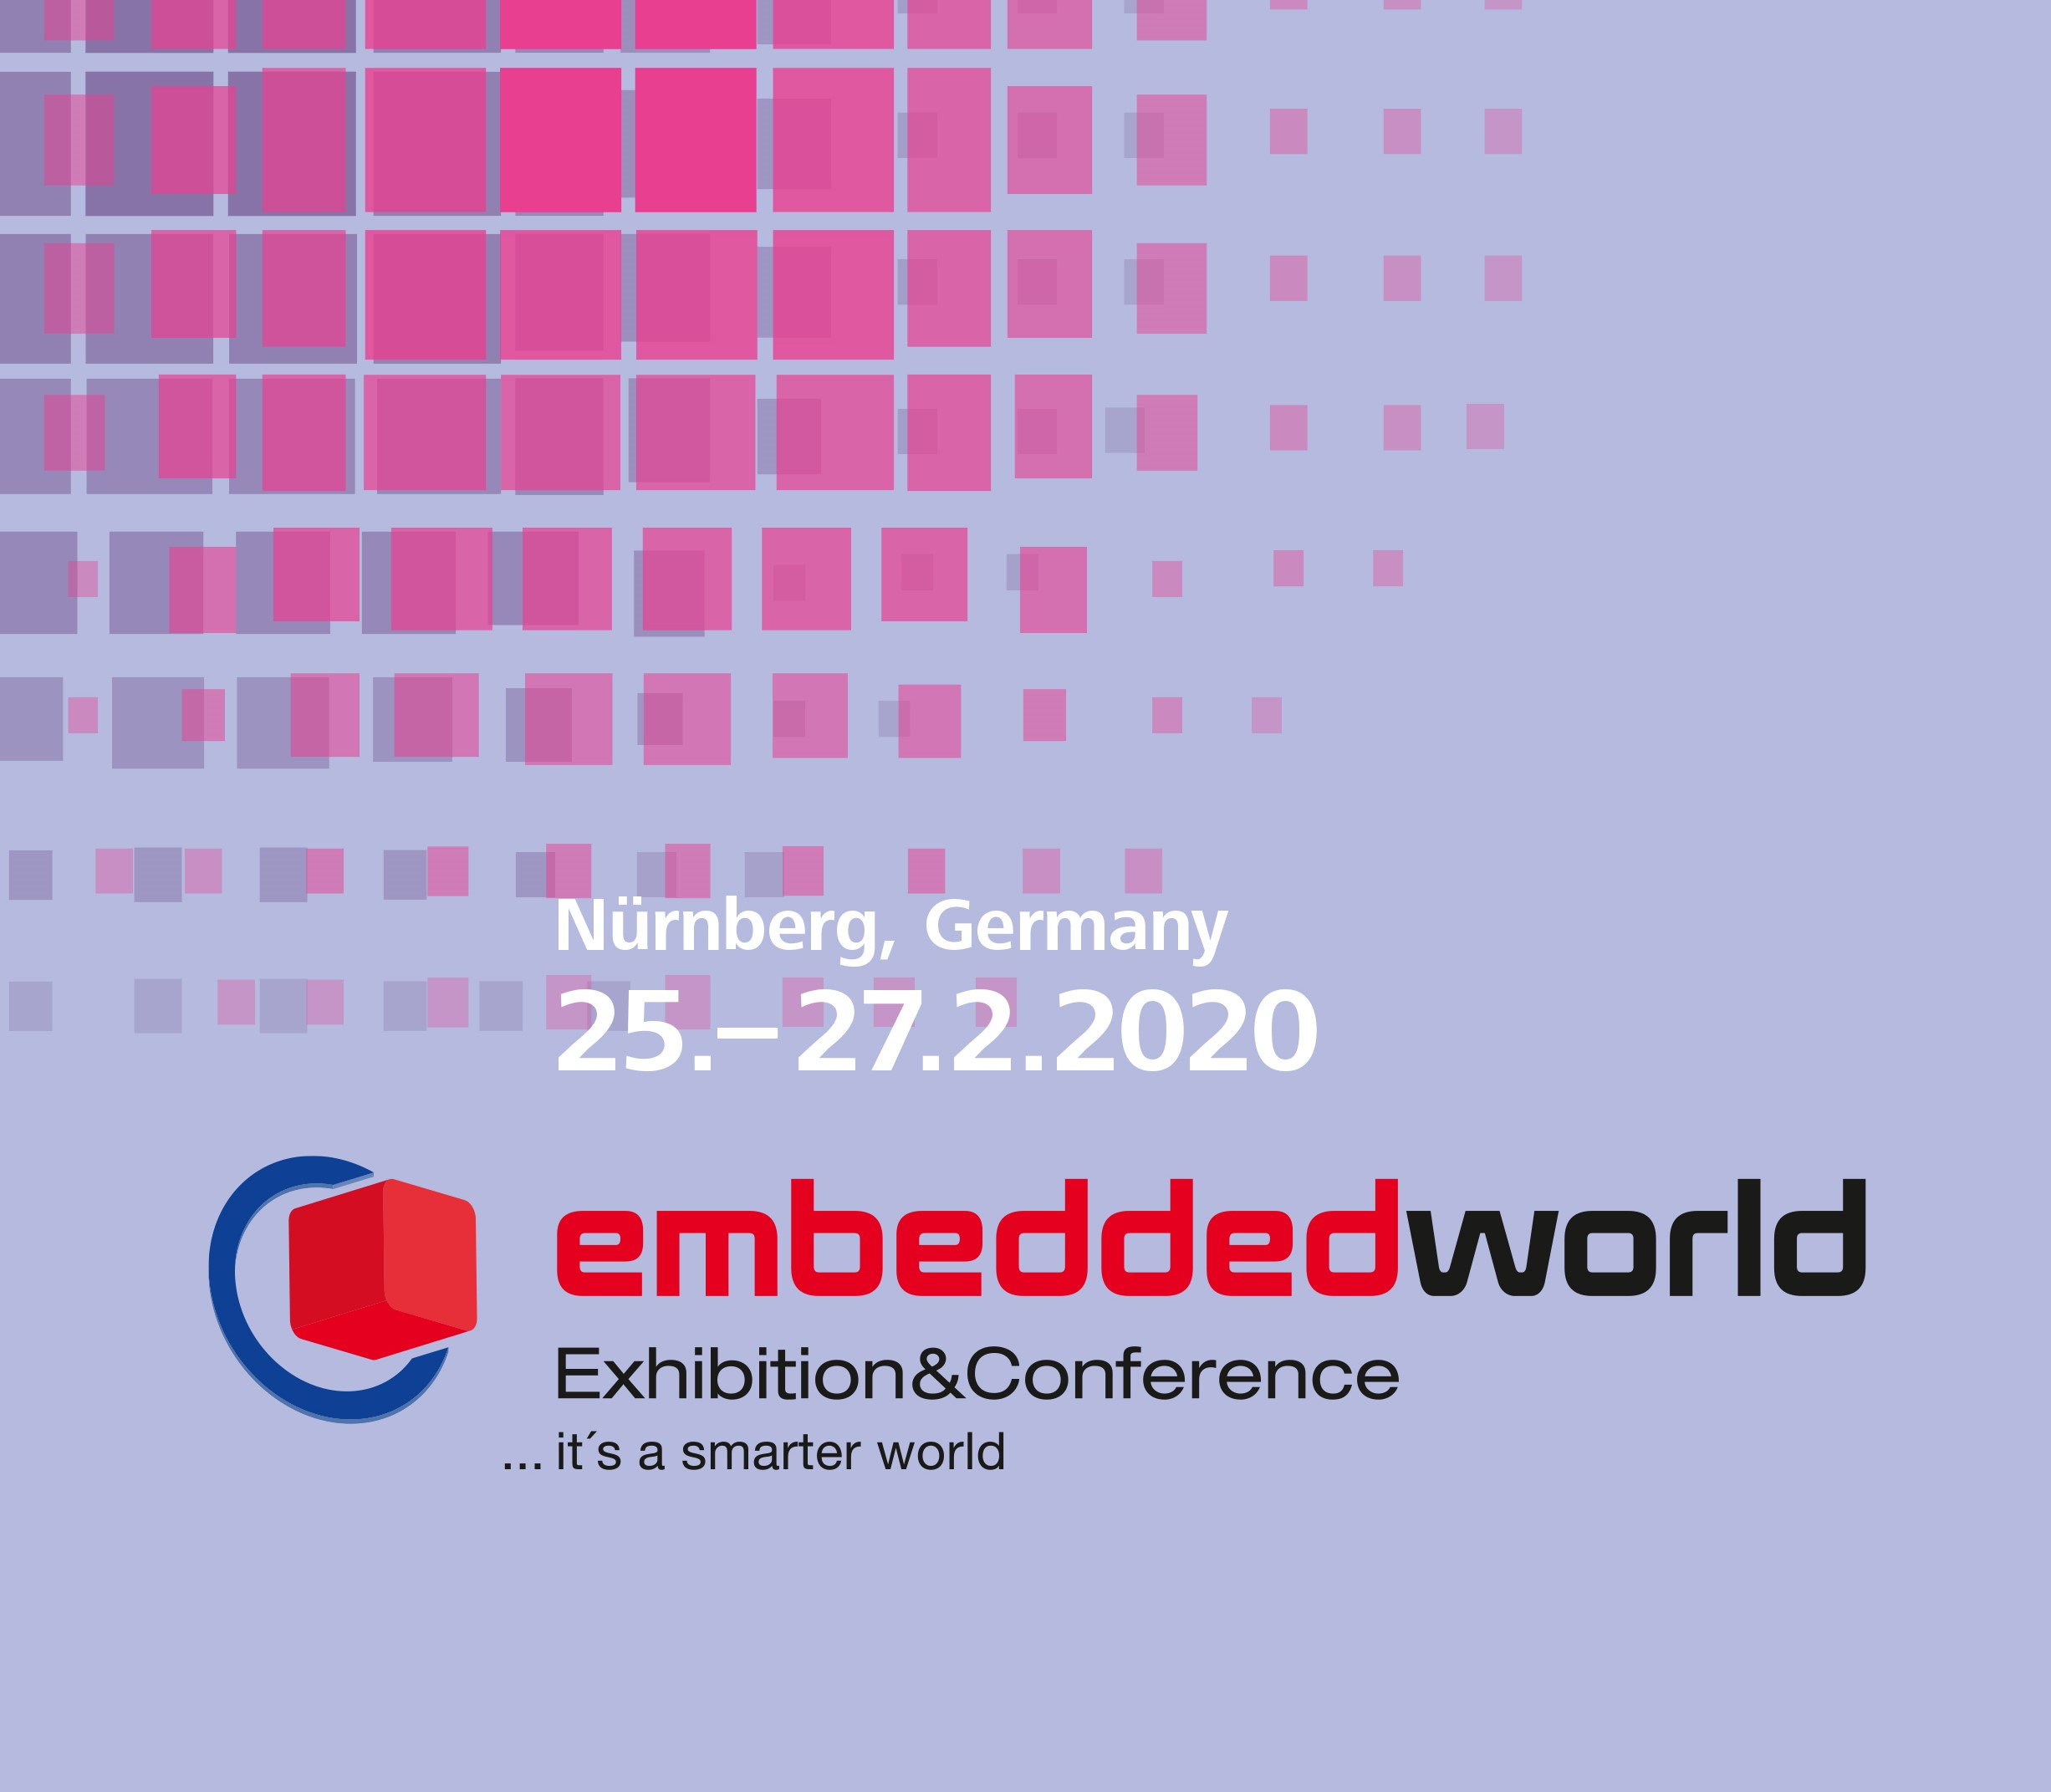 cropped_embedded-world-2020